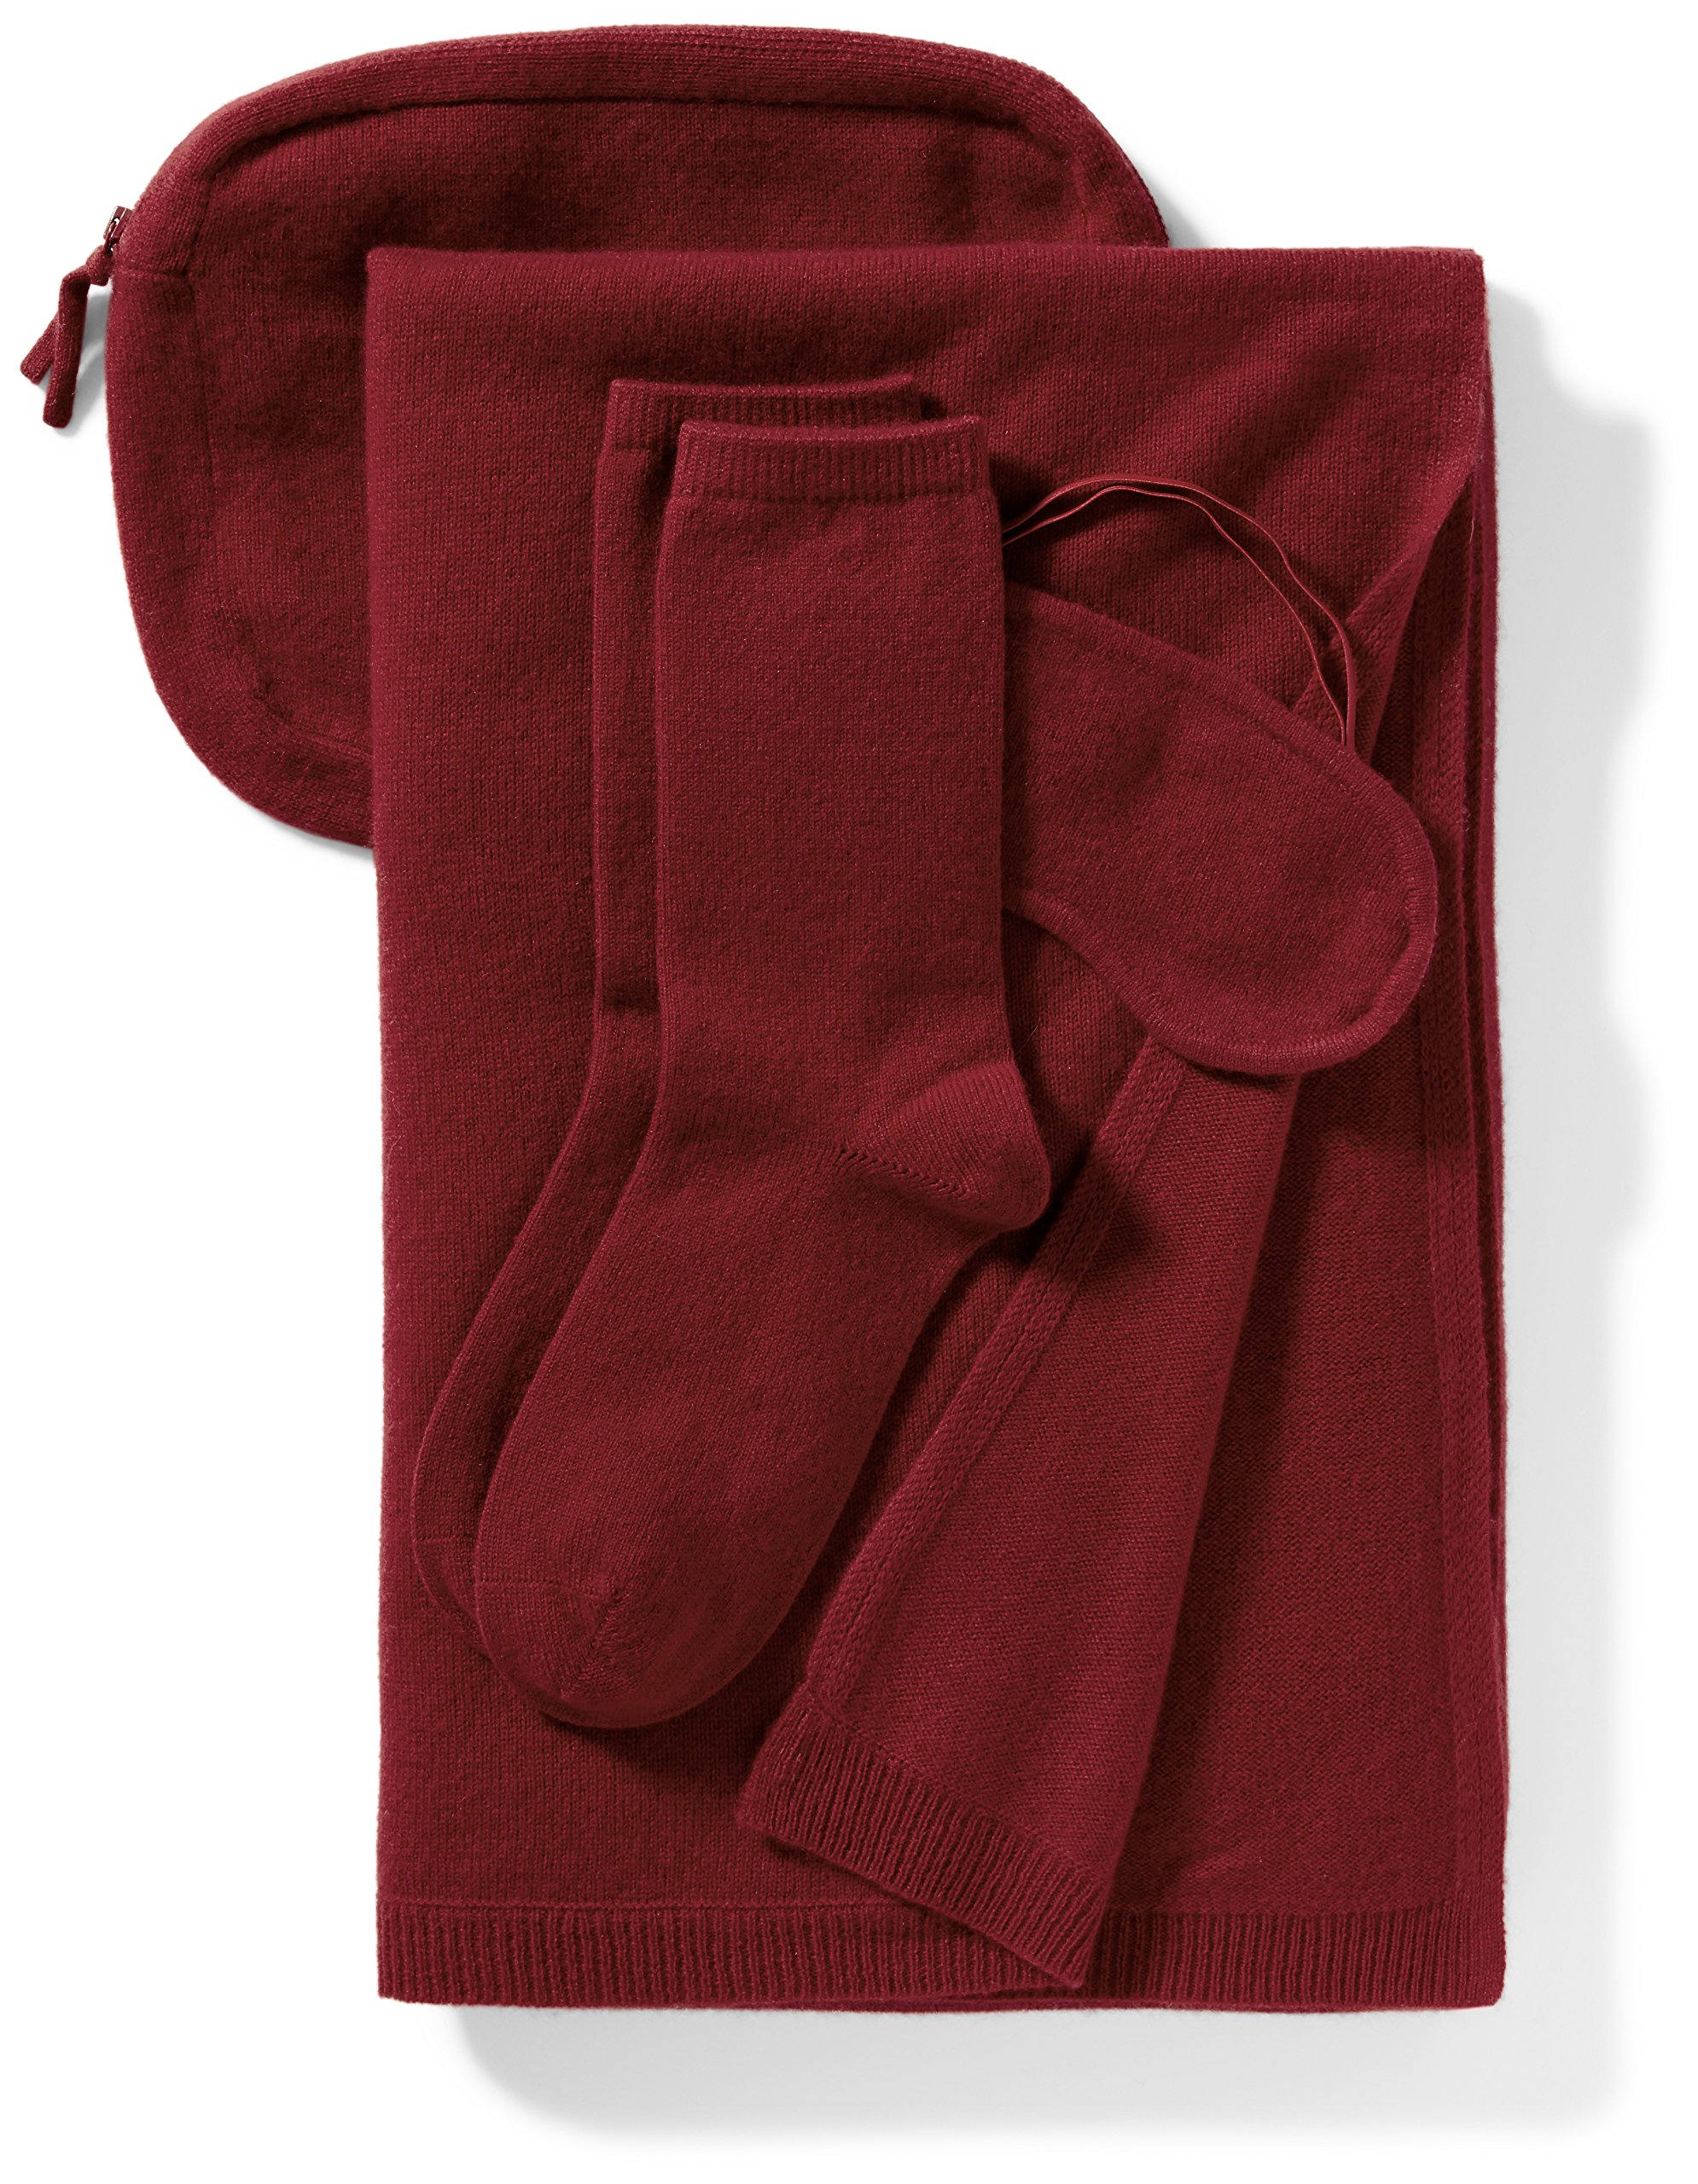 Lark & Ro Women's 100% Cashmere Travel Set, Red, One Size